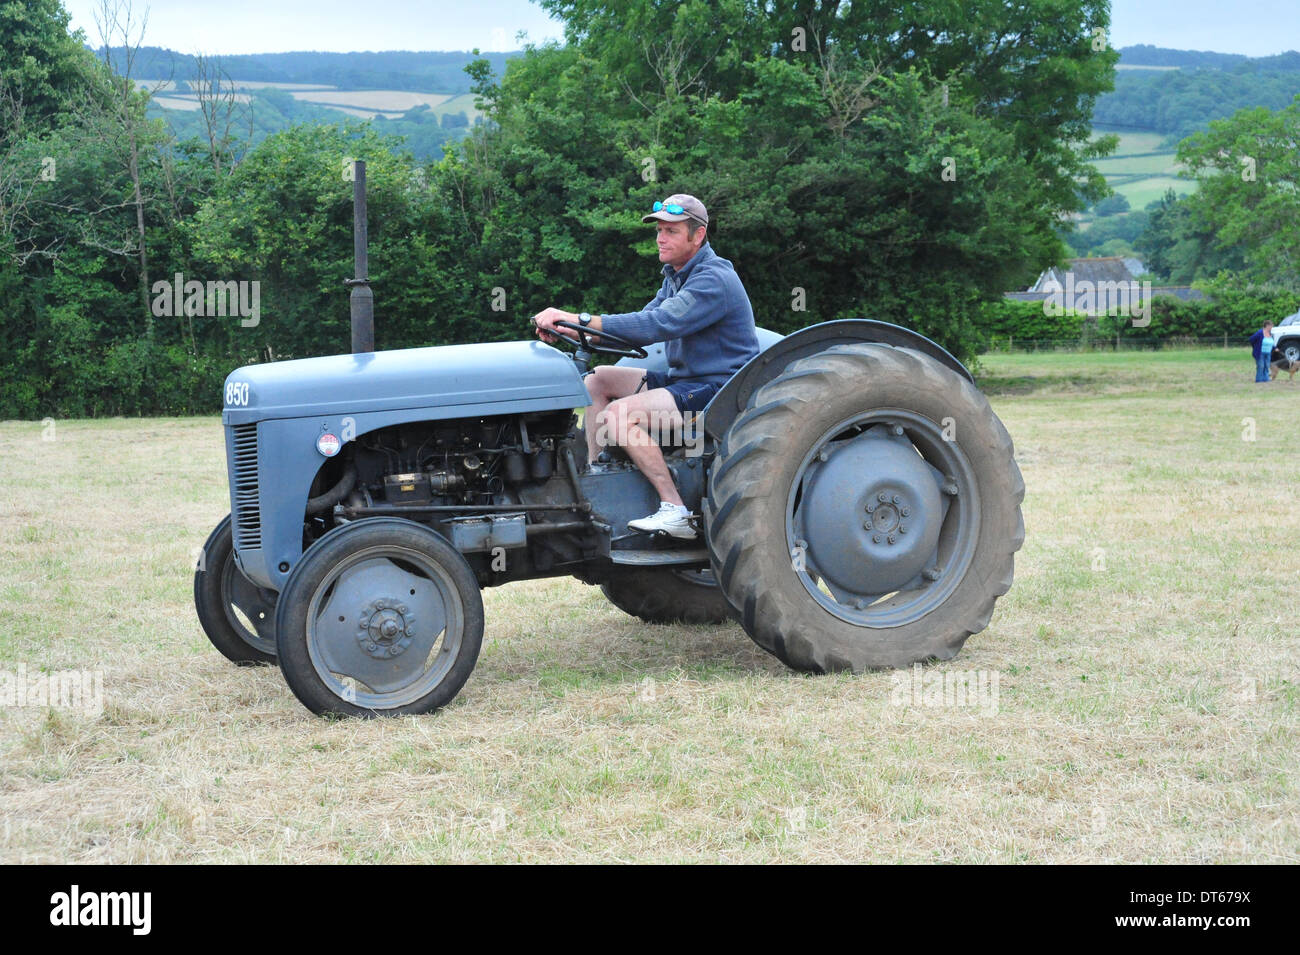 Ford 9n Mower : Ford n tractor stock photo royalty free image